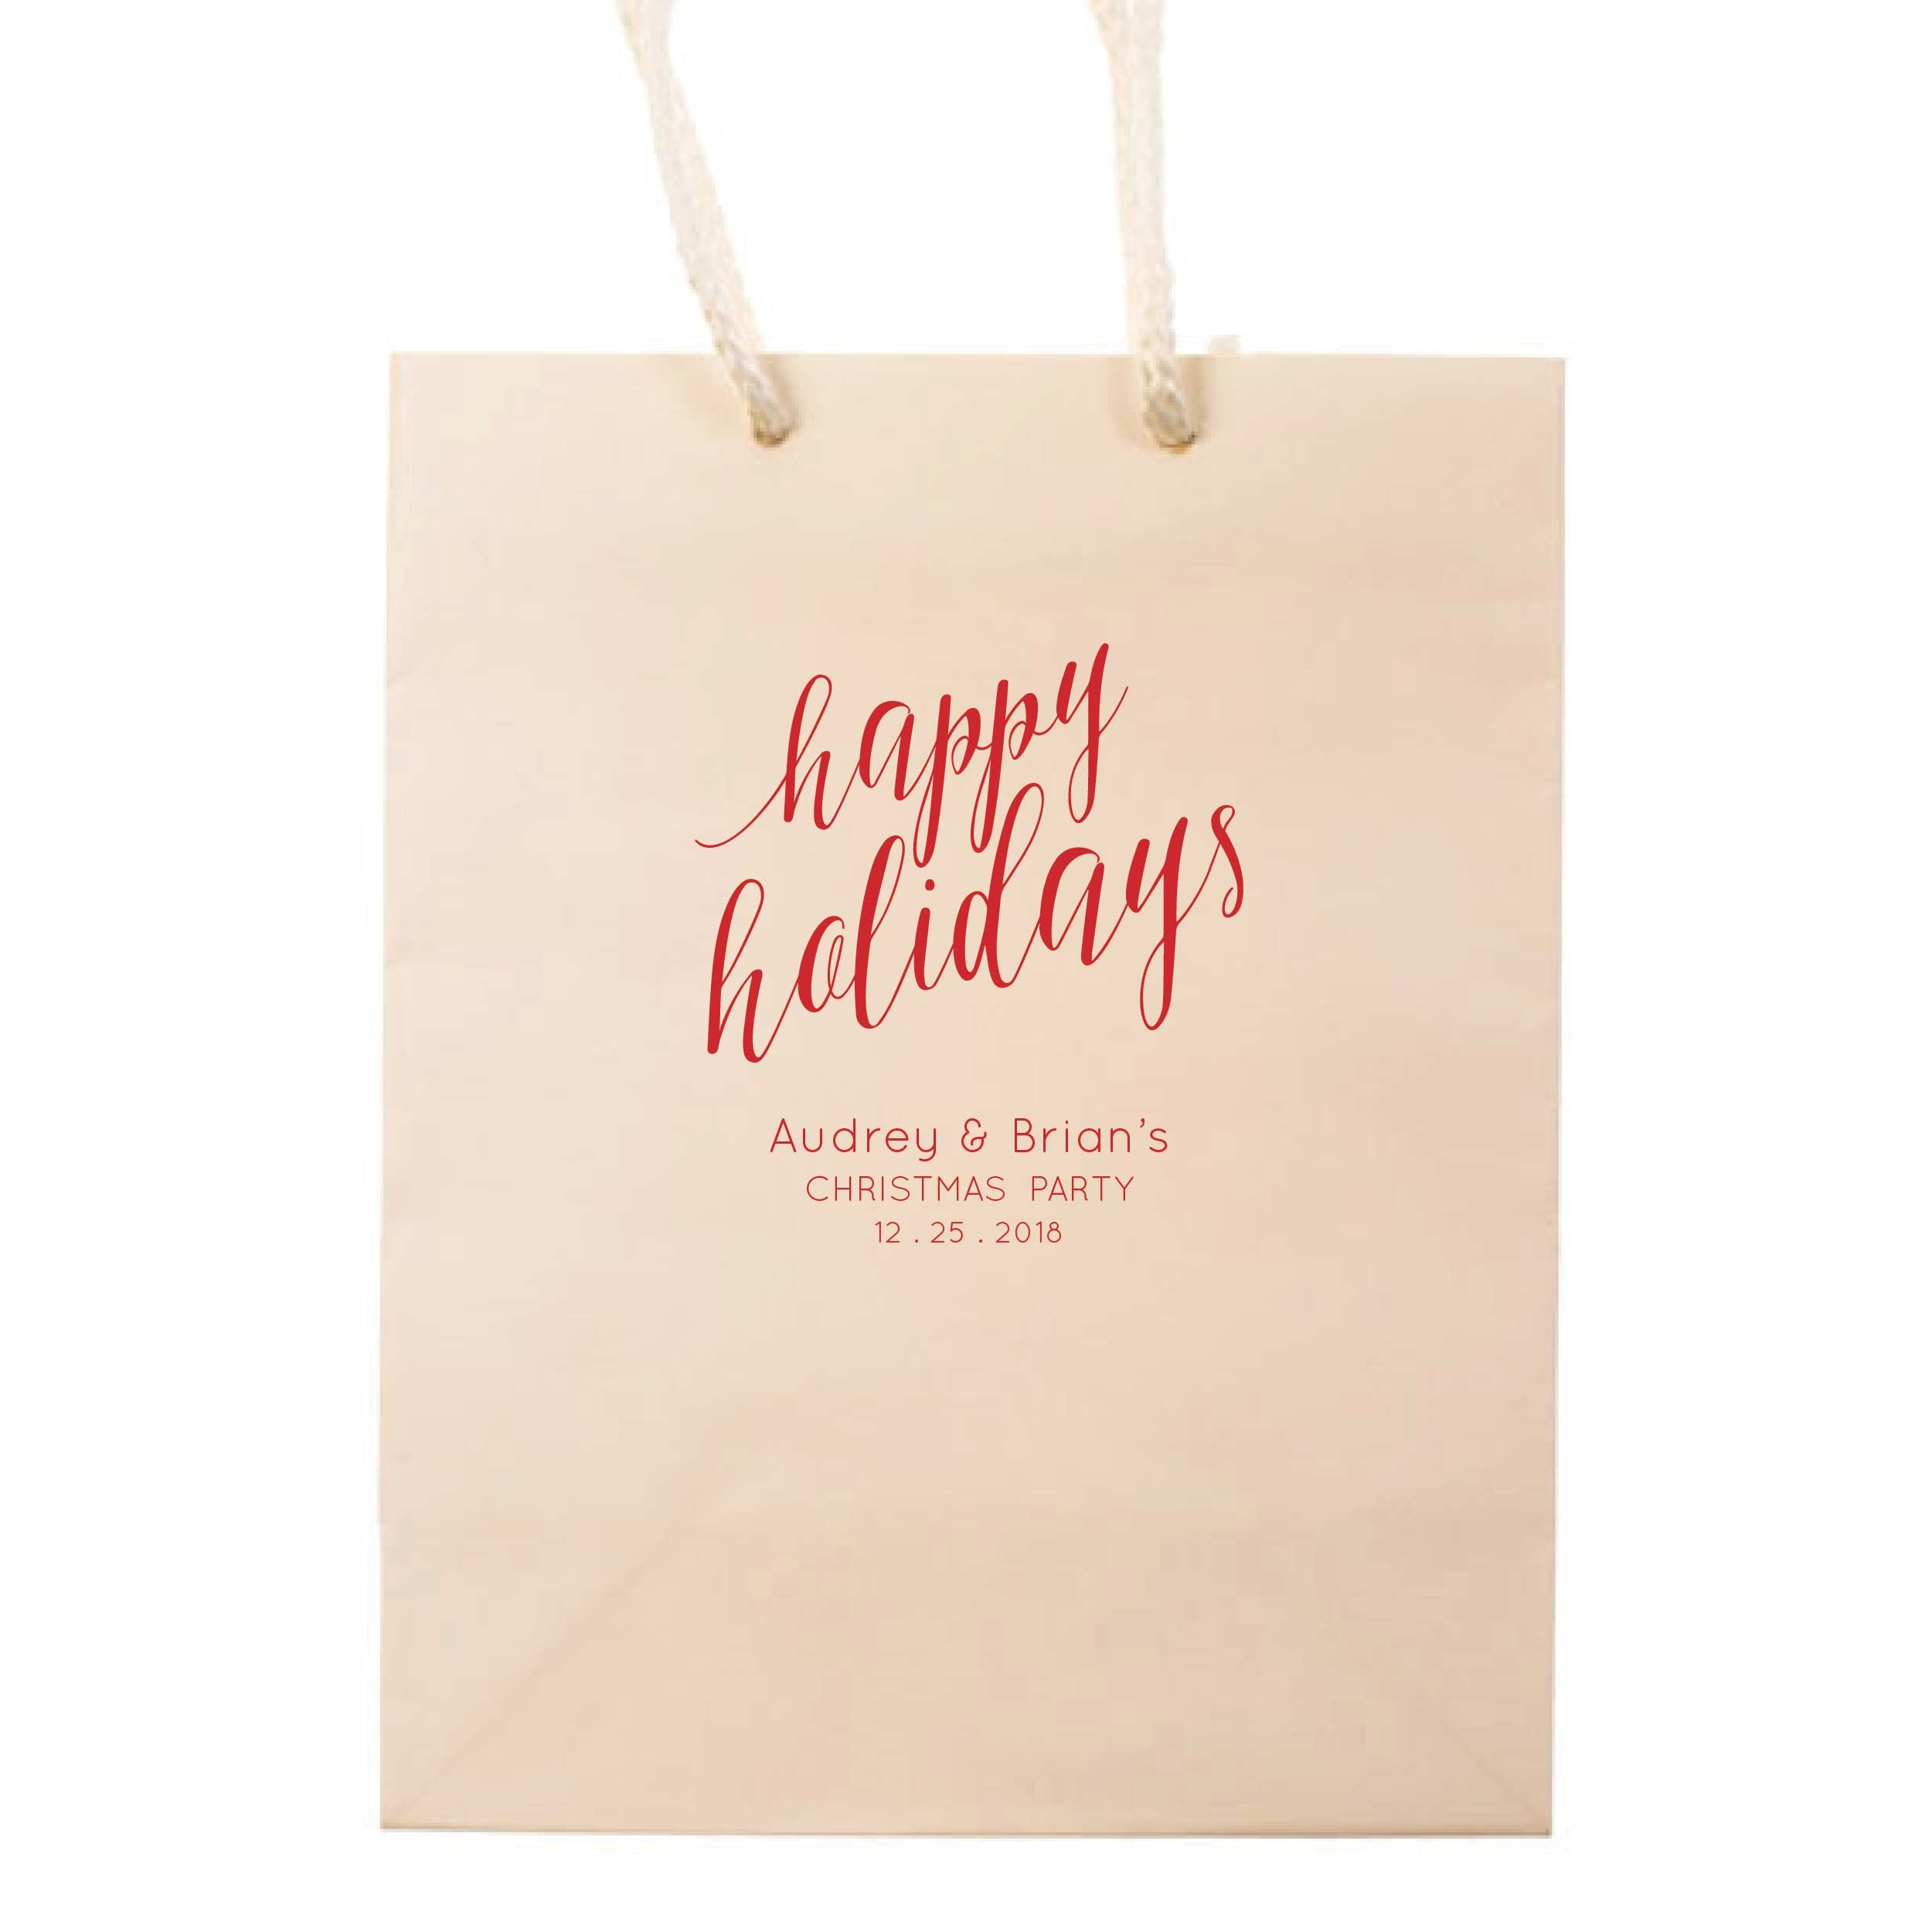 Happy Holidays Gift Bags - Personalized Gift Bag - Mary Collection  sc 1 st  Tea and Becky & Happy Holidays Gift Bags - Personalized Gift Bag - Mary Collection ...